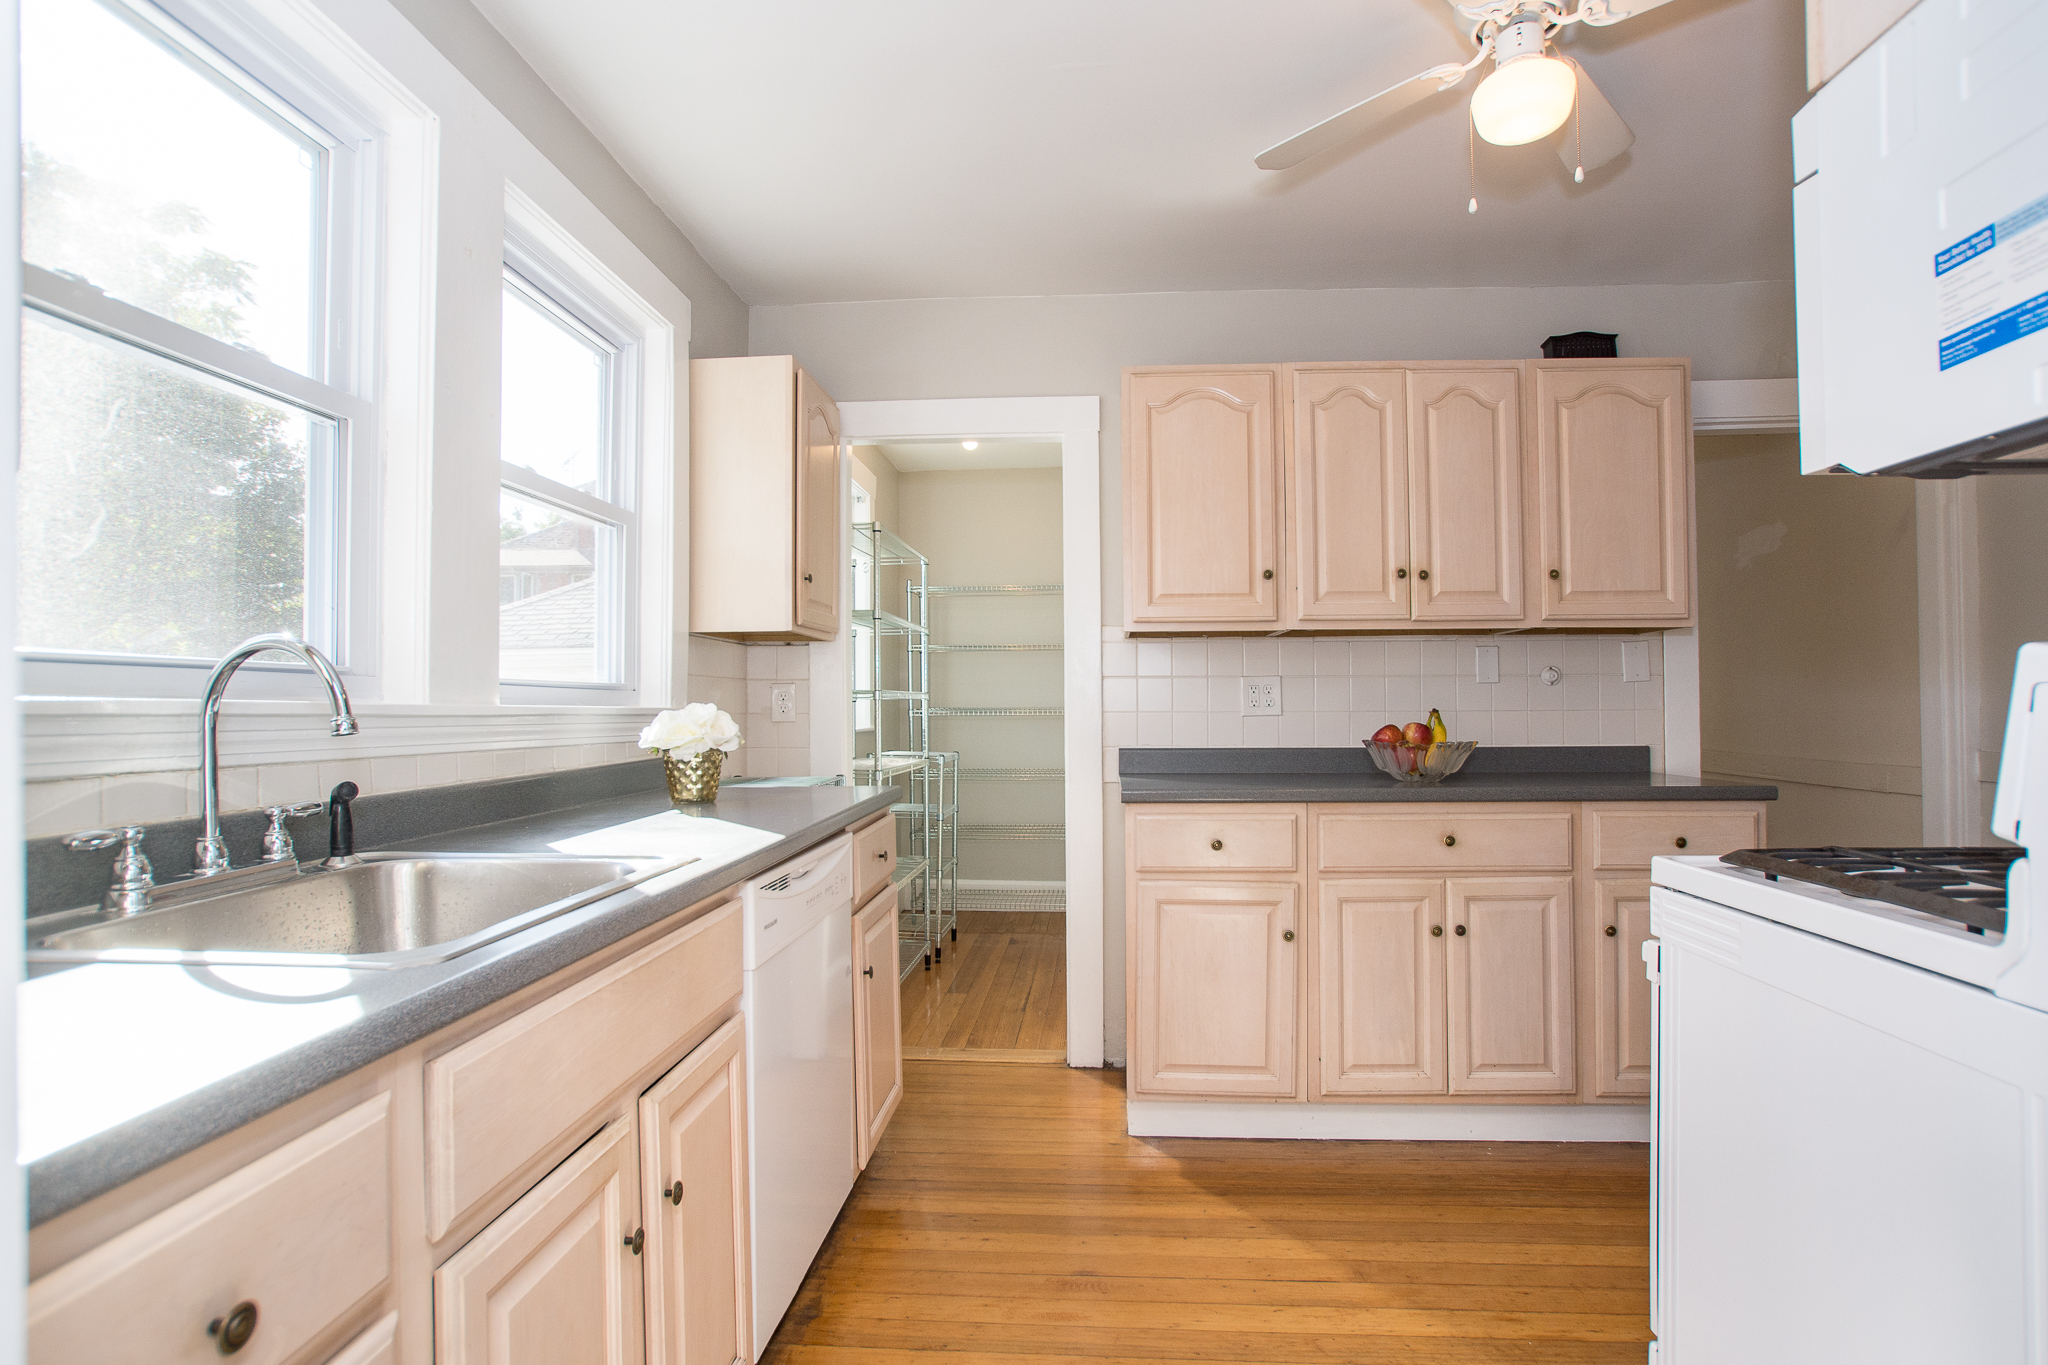 86 Turner Street; #1, Brighton, MA - Kitchen